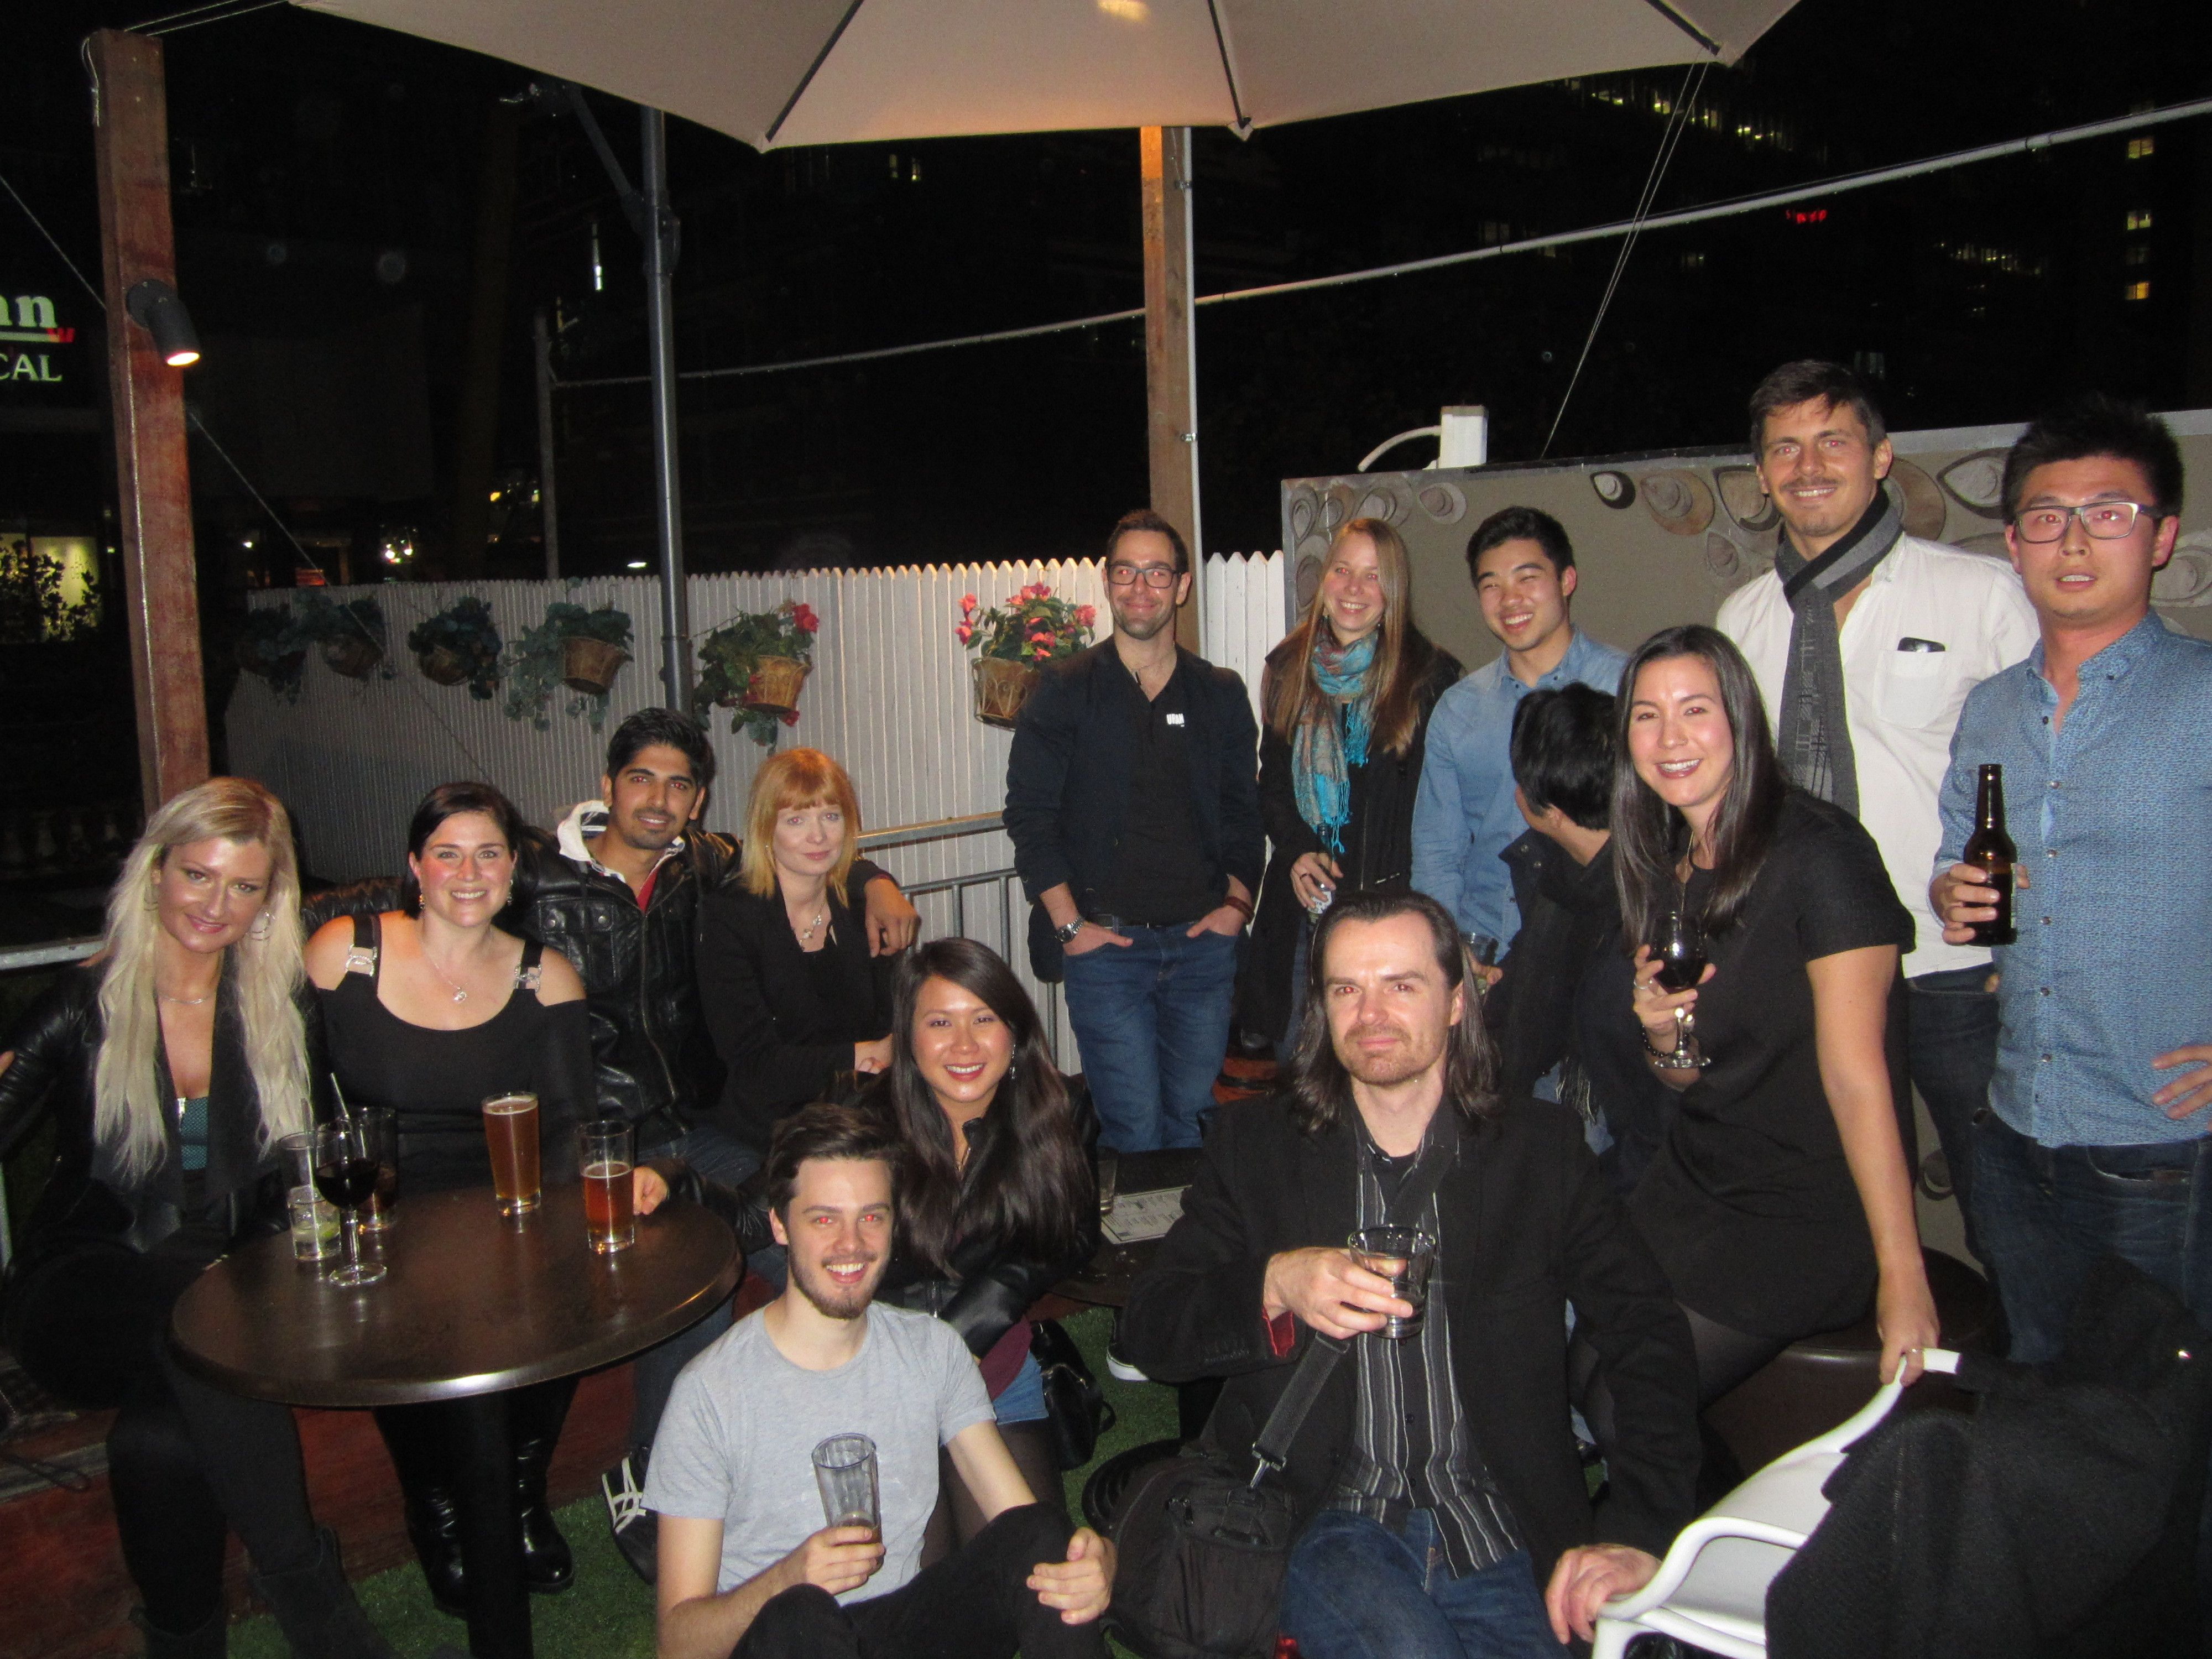 Social Circle Melbourne: Partying, Flirting & Making Friends